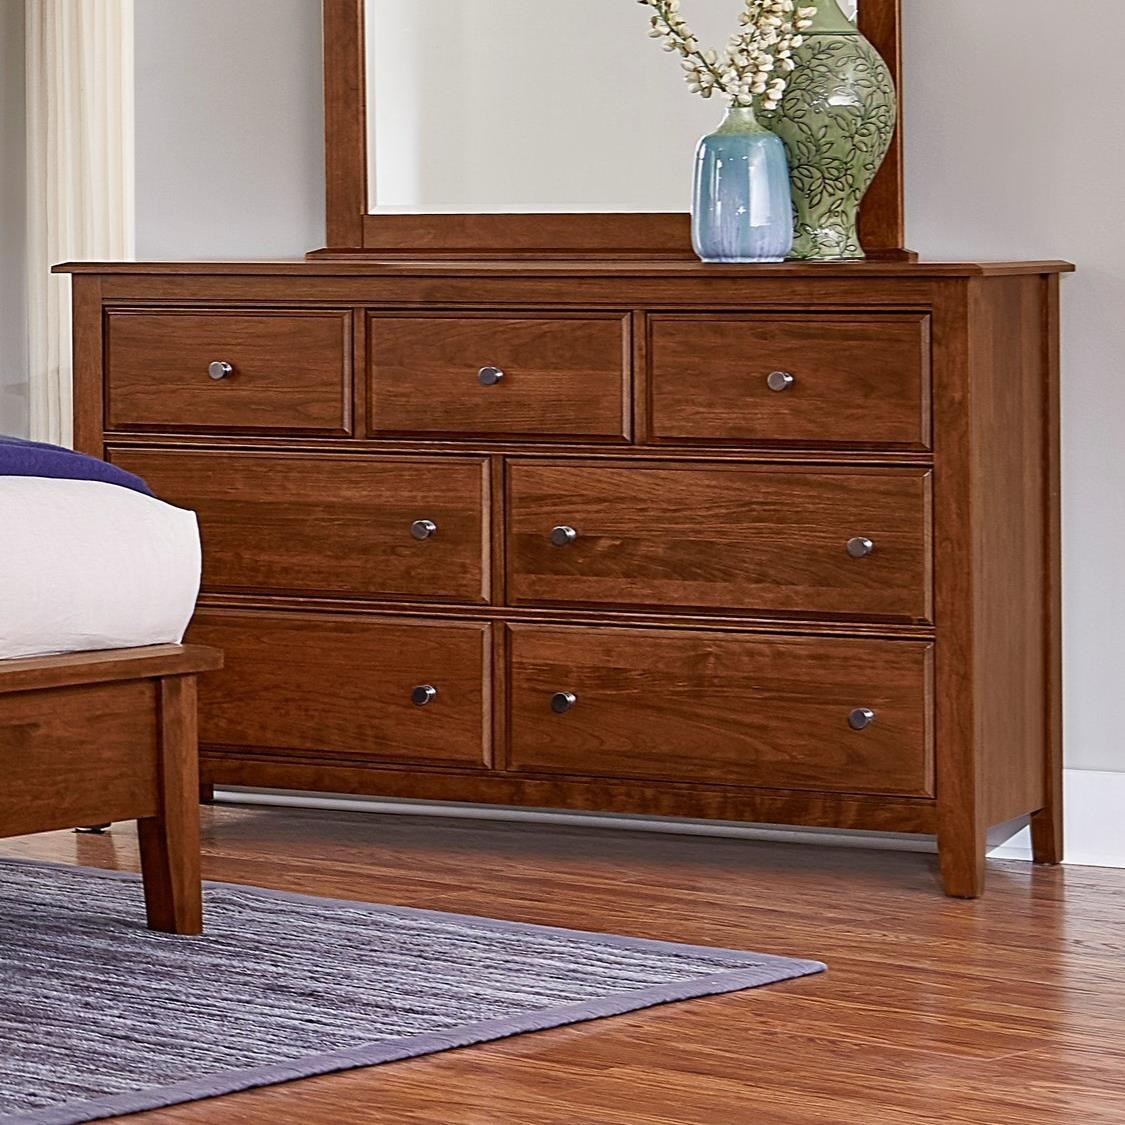 Artisan & Post by Vaughan Bassett Artisan Choices Loft Triple Dresser - 7 Drawers - Item Number: 100-003